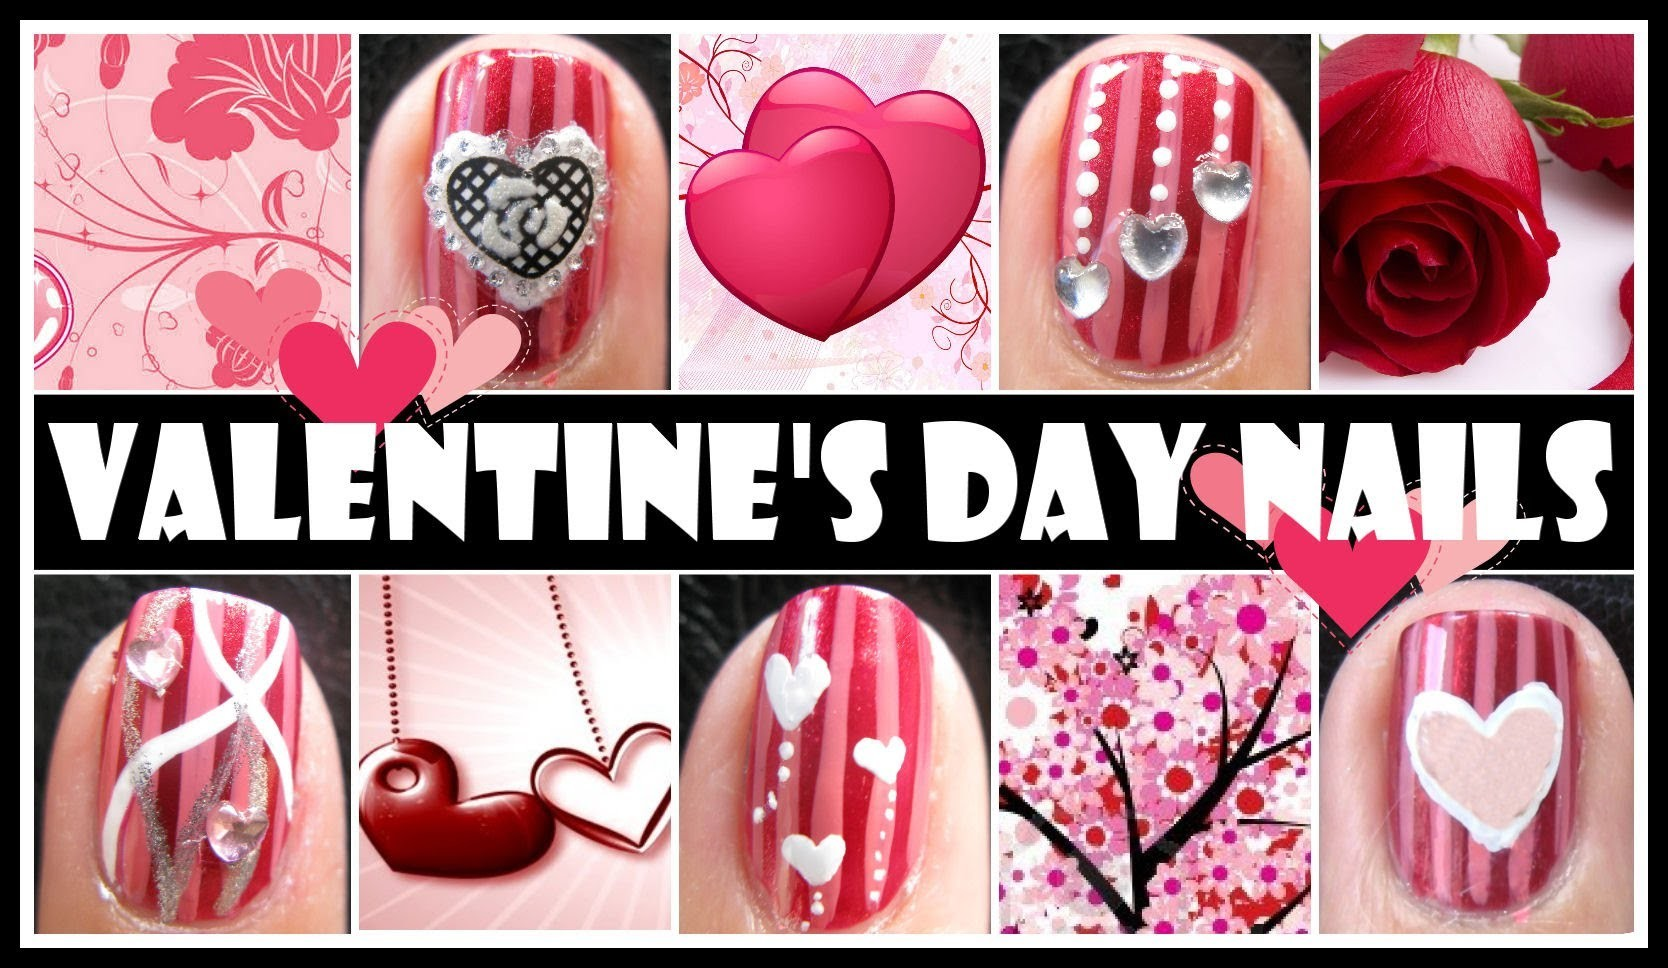 RED VALENTINES DAY NAIL DESIGNS, ROMANTIC NAIL ART TUTORIAL SHORT ...